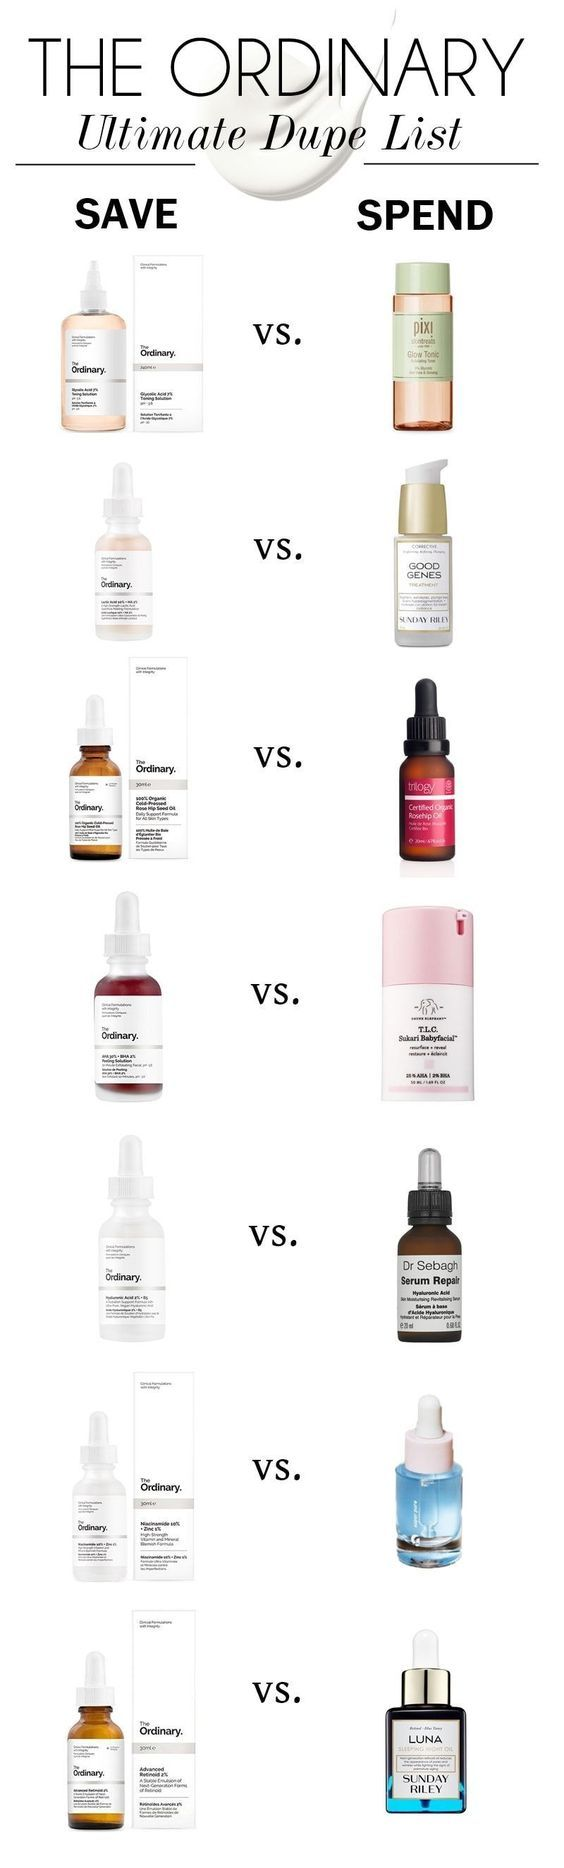 The-Ordinary-Dupe-List skincare dupes #SkinCare